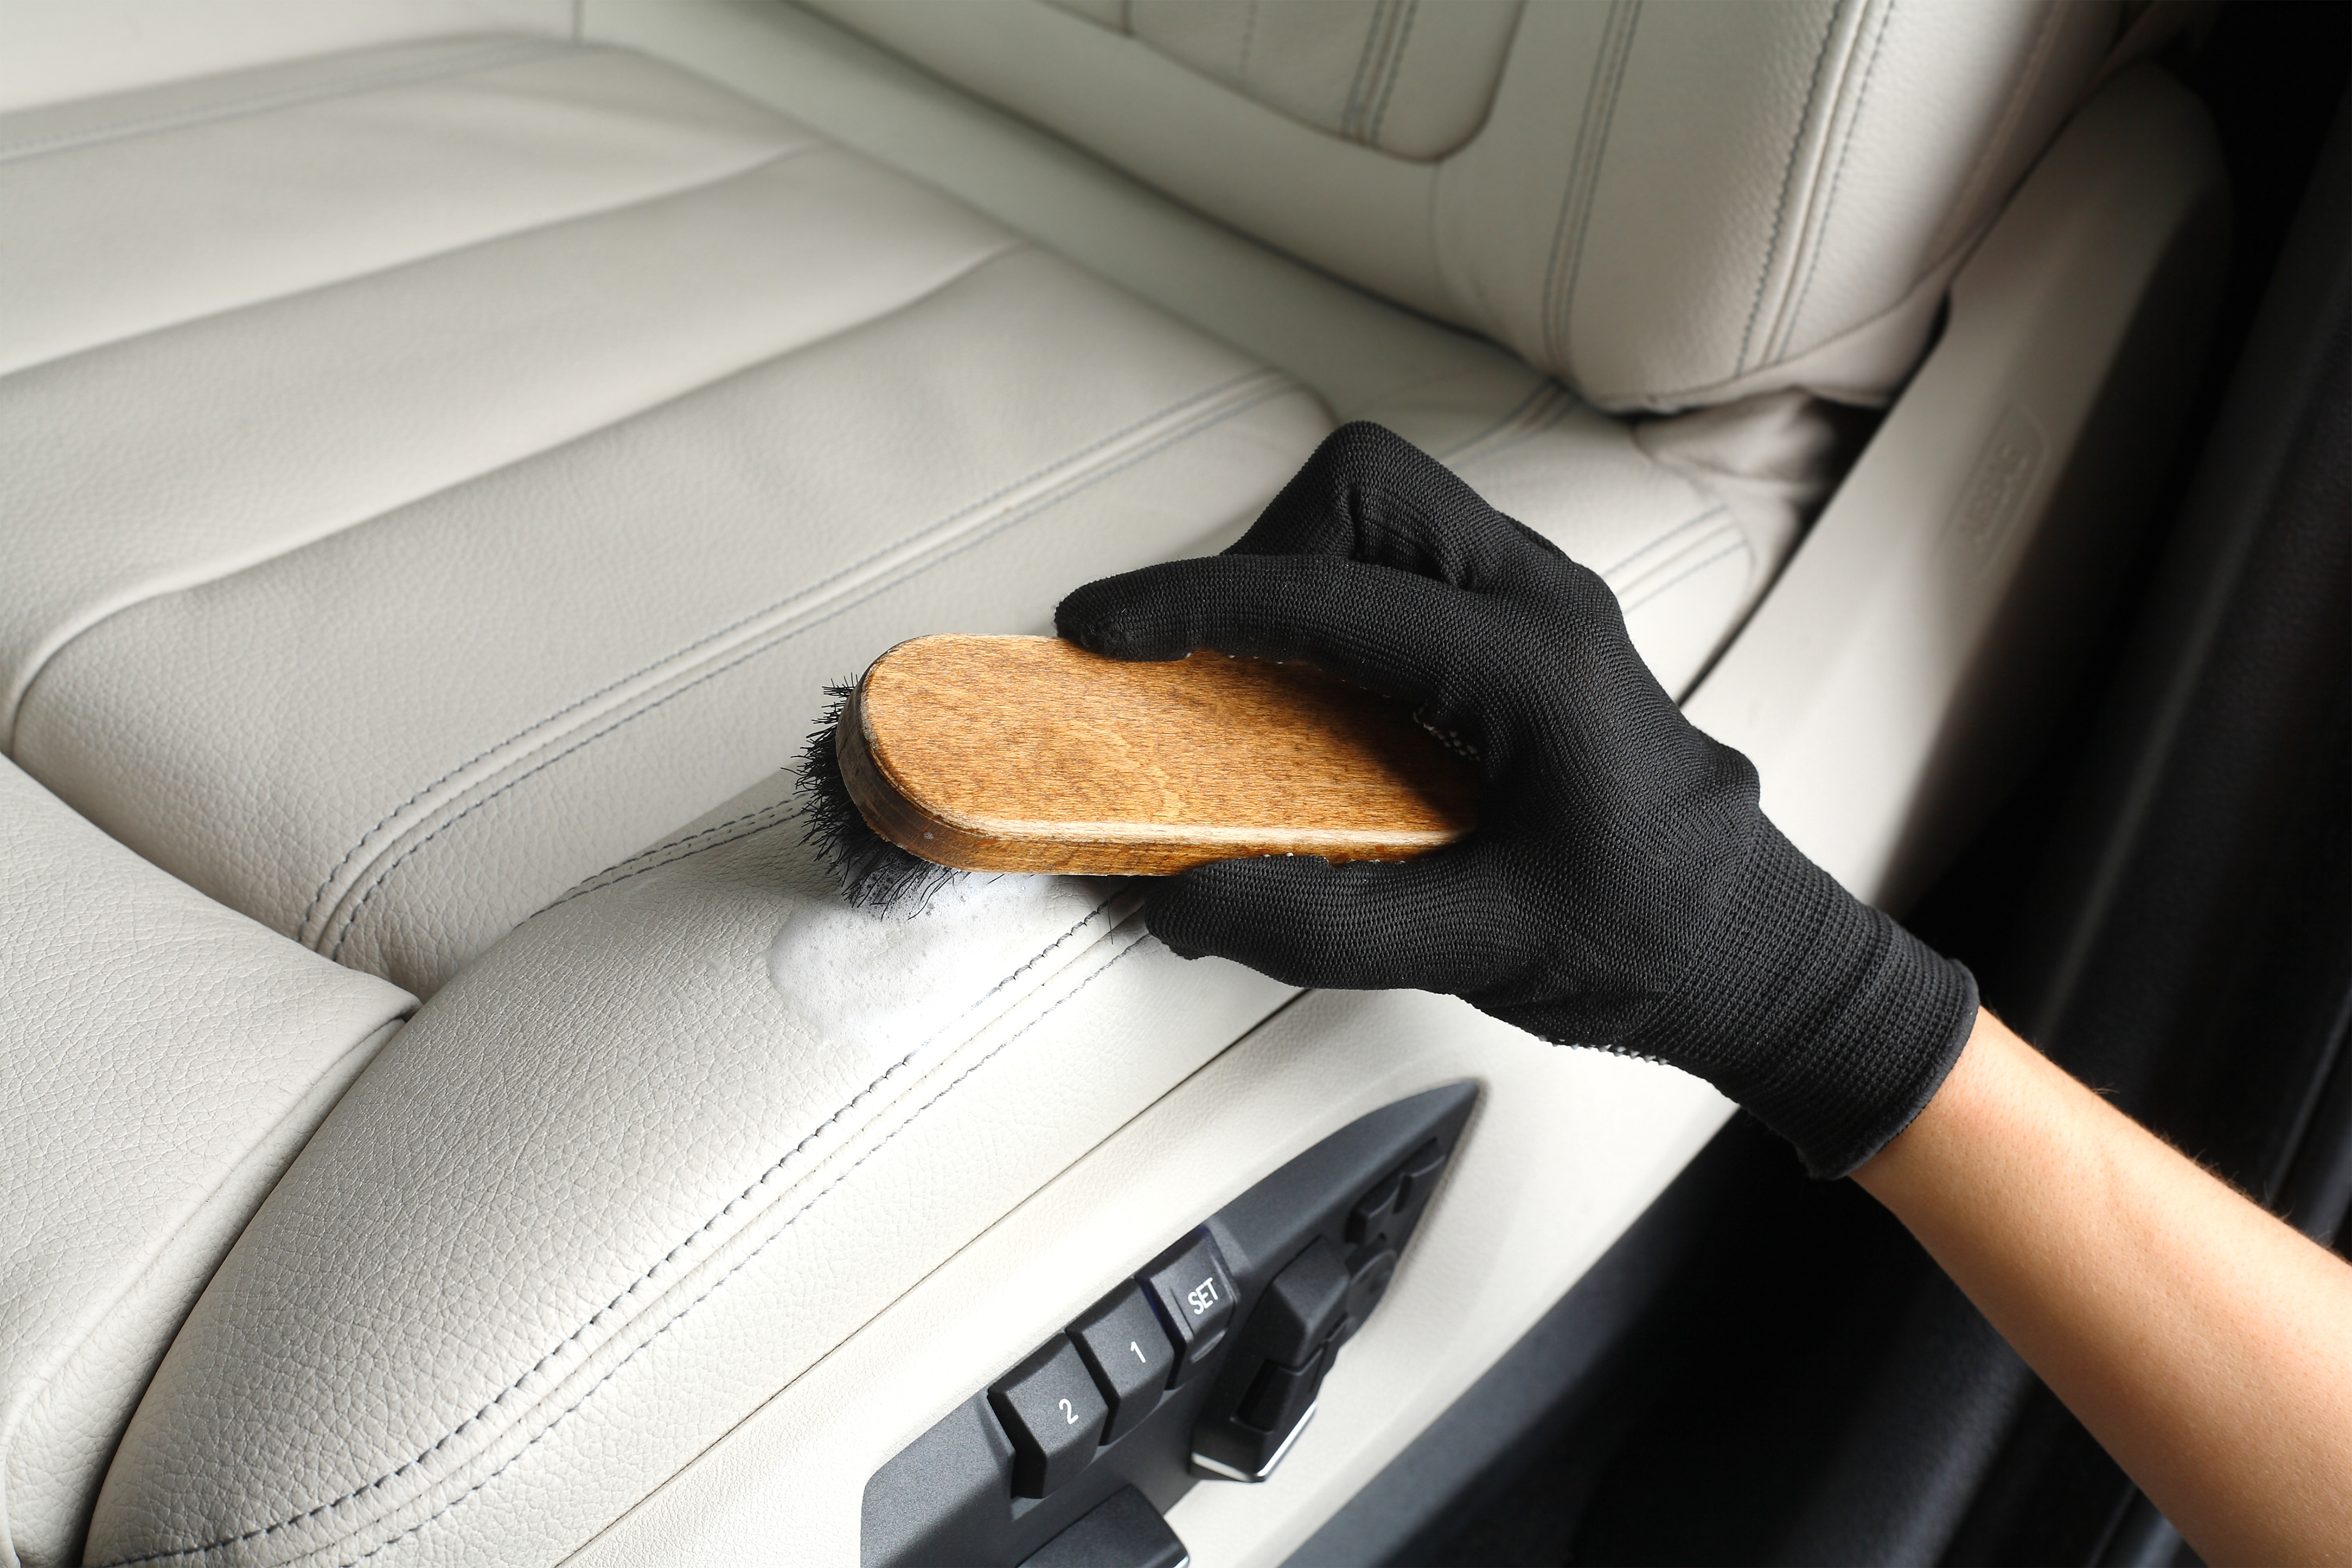 Leather cleaning & protection from UV rays, cracking